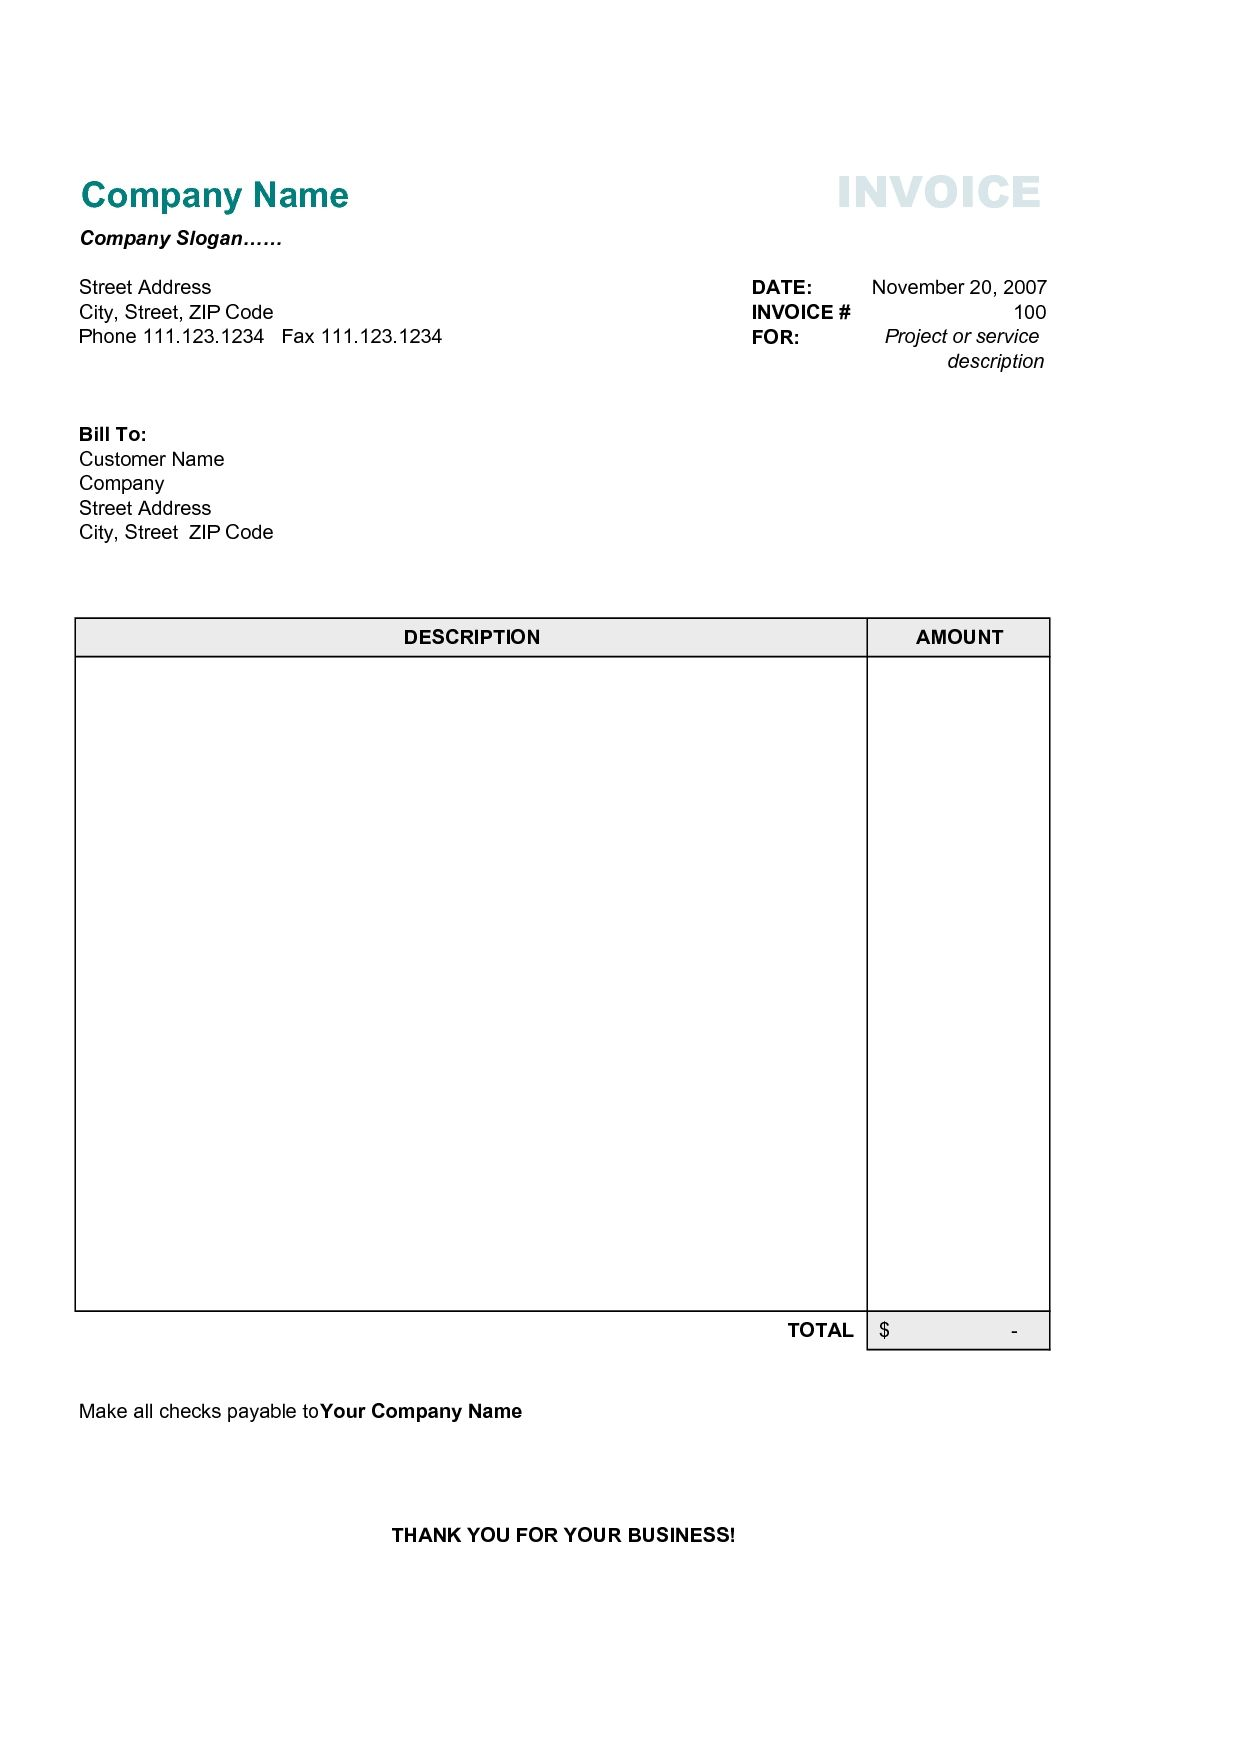 Free Business Invoice Template Best Business Template Free Invoice - Free invoice templetes for service business